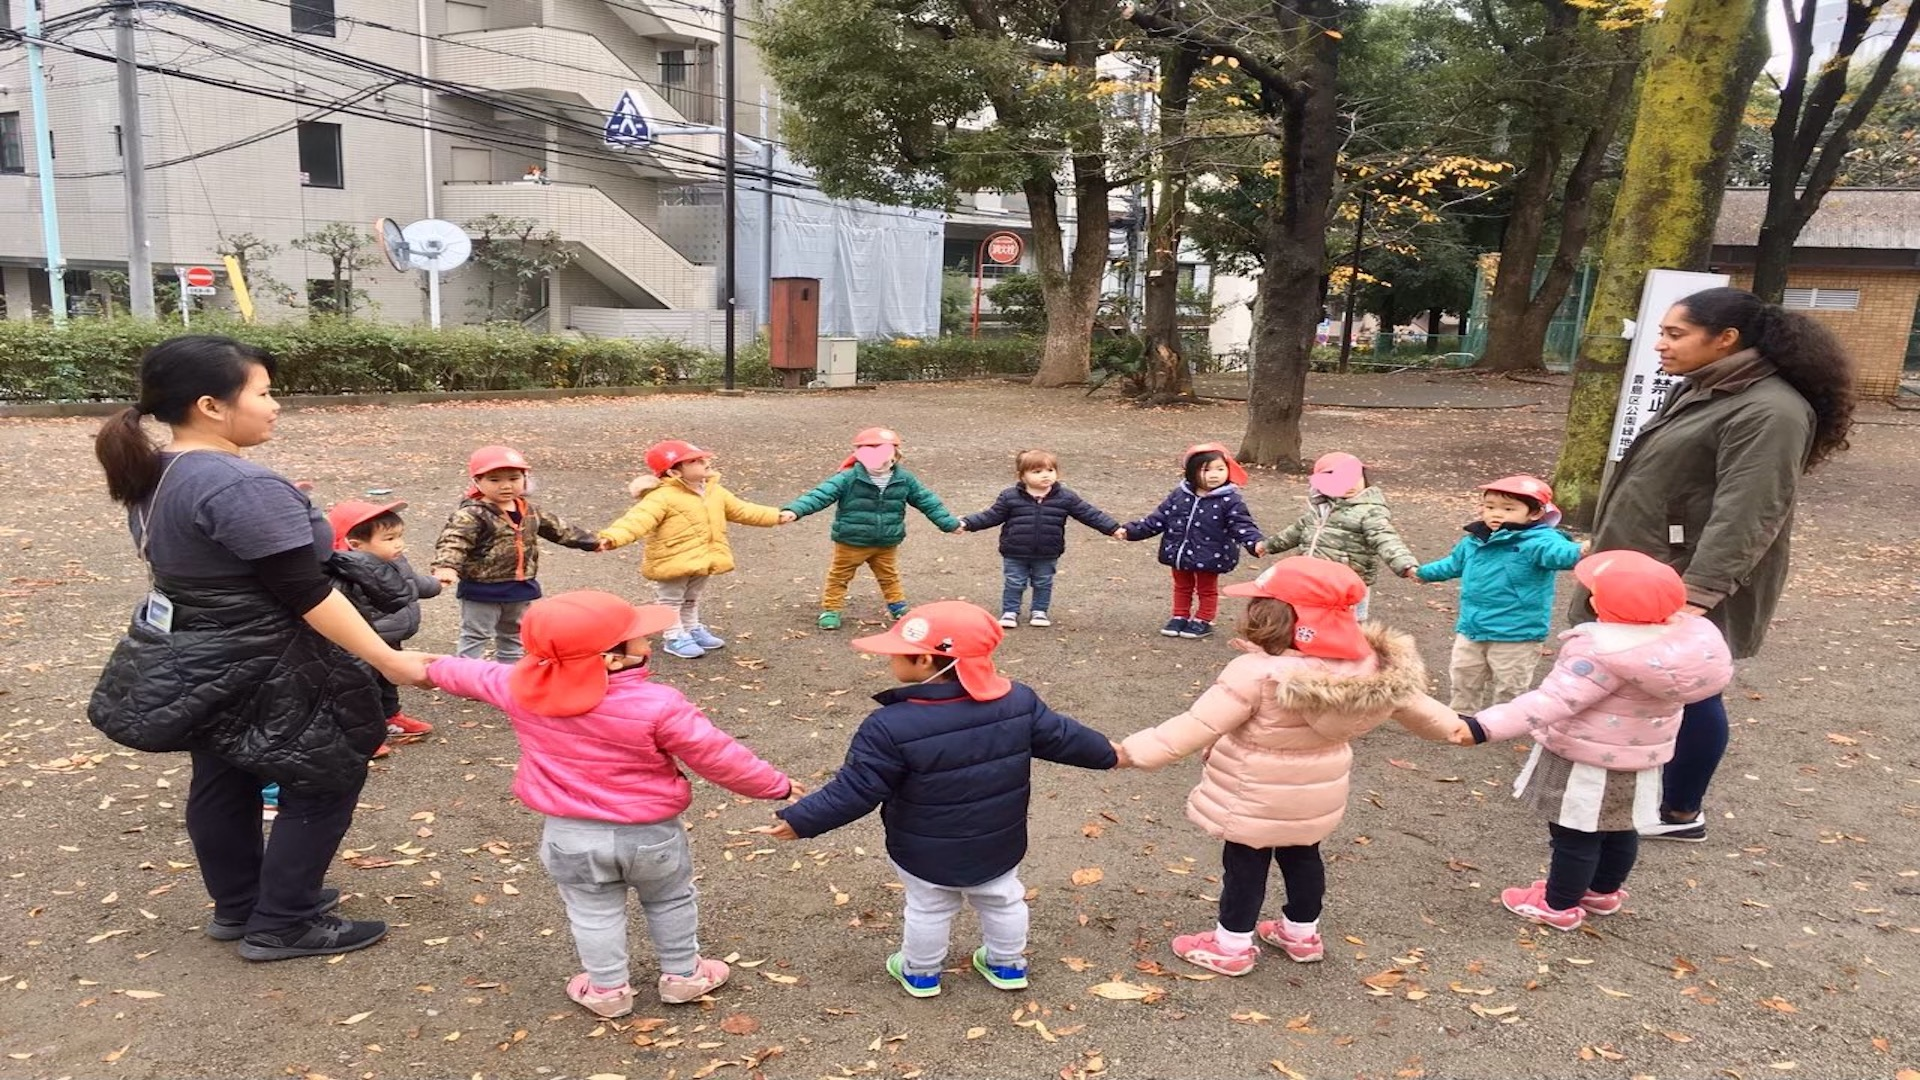 tokyo preschool kids playing outside